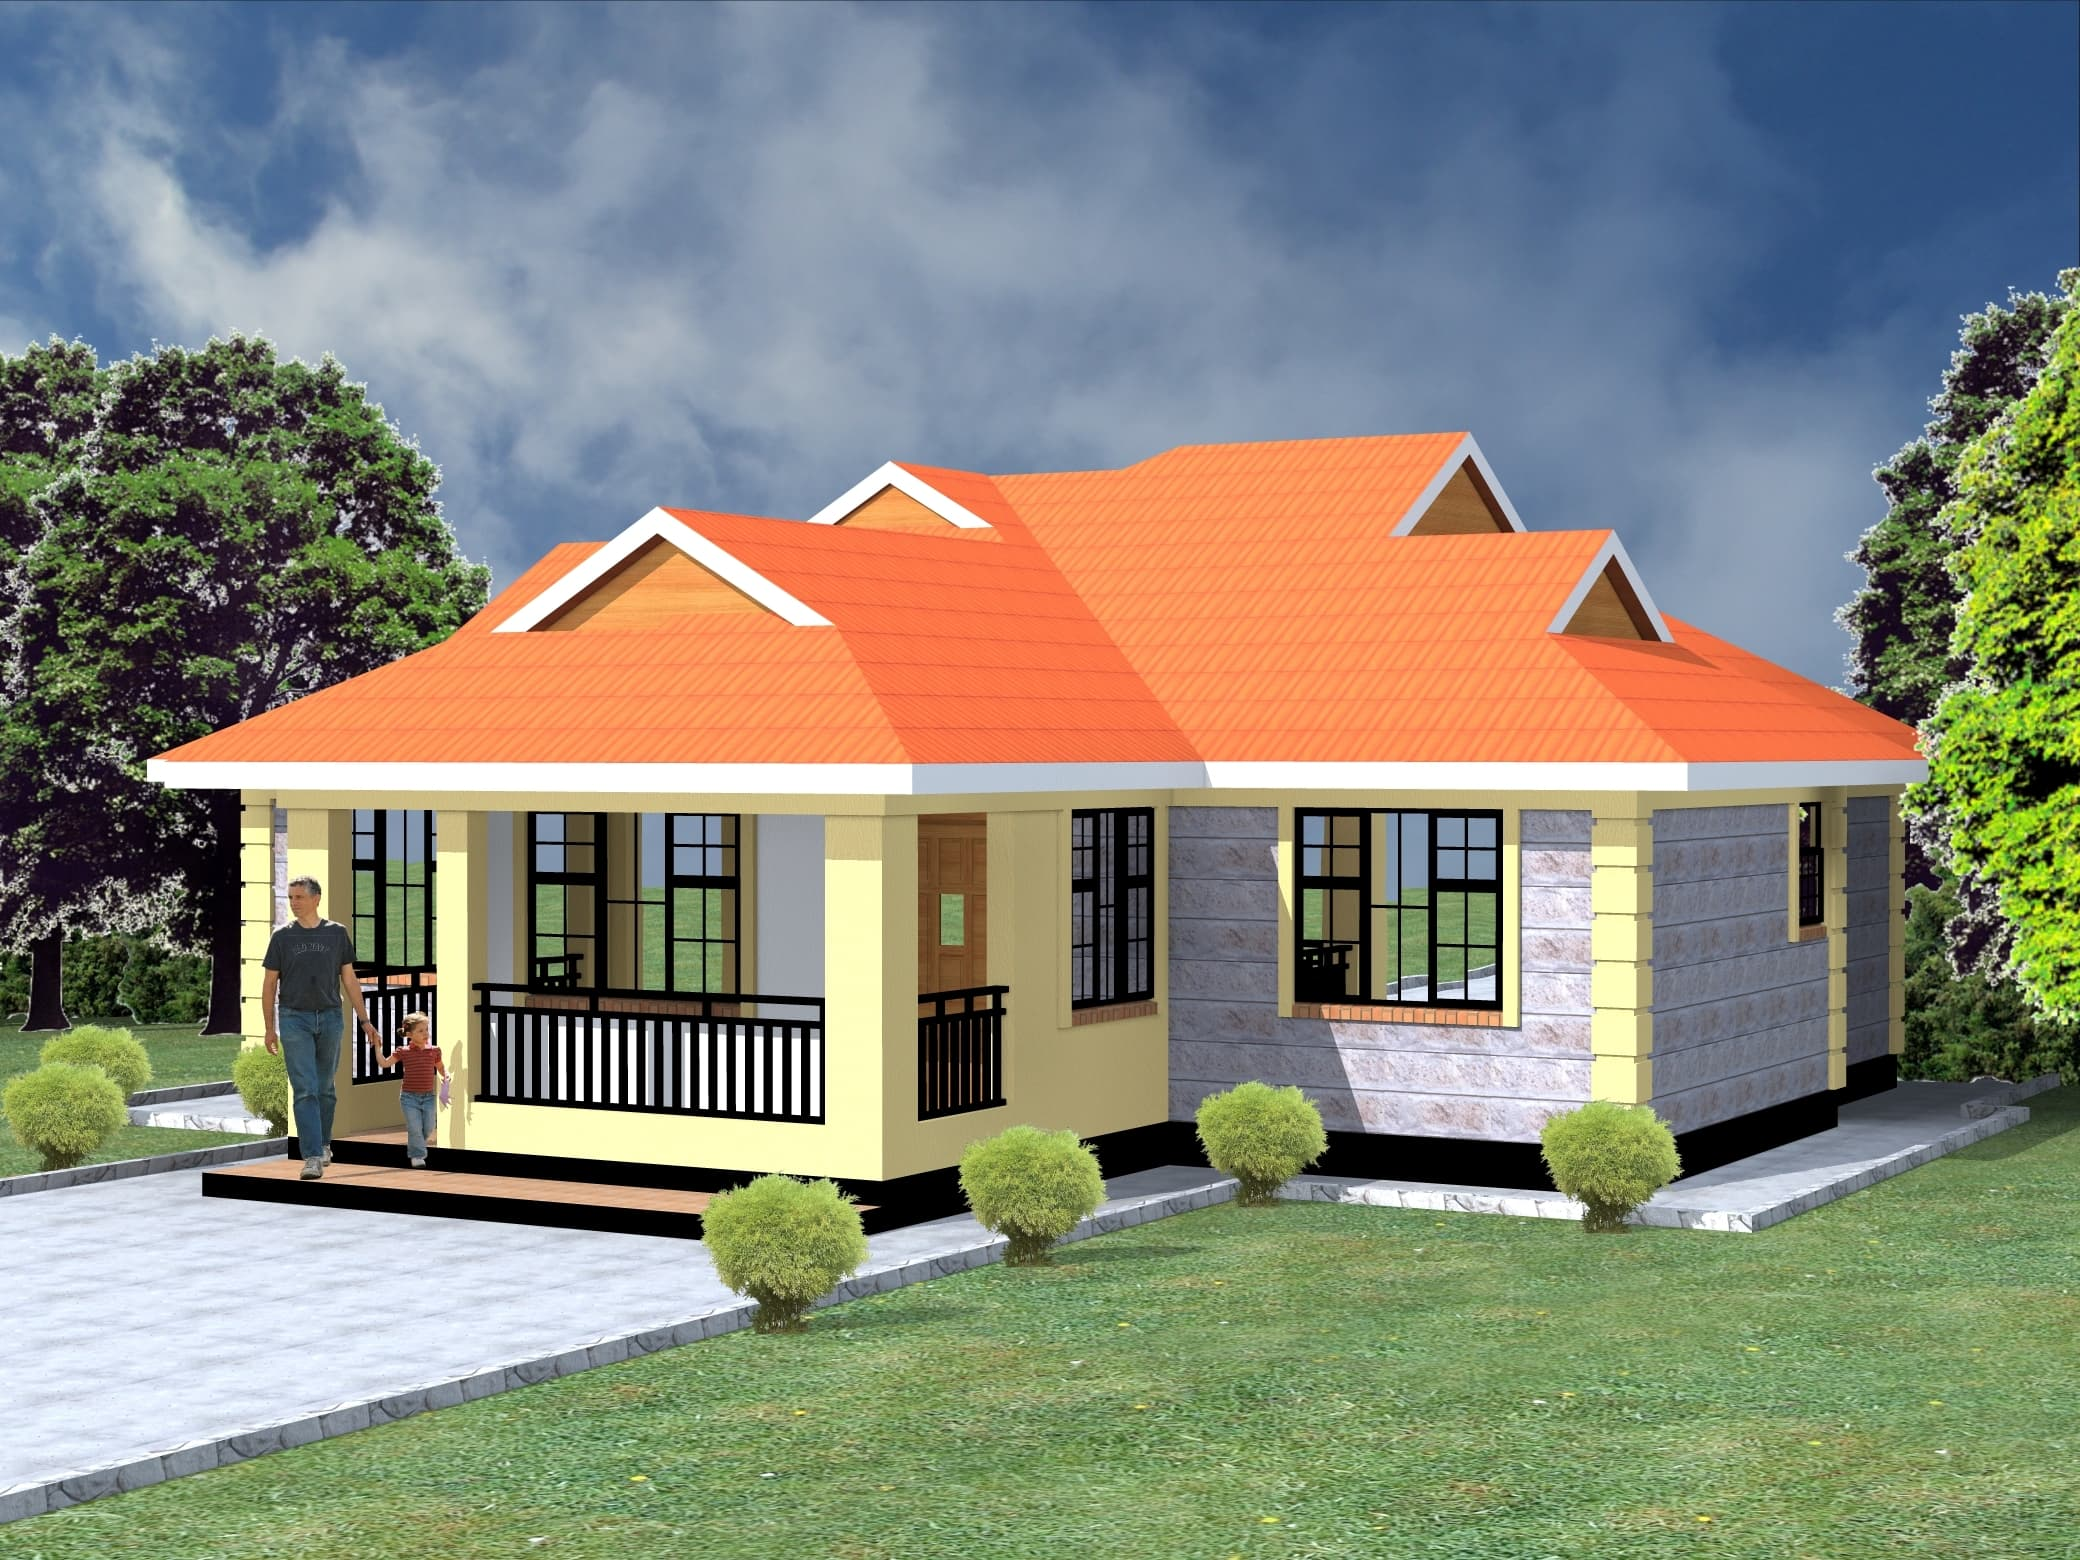 3 Bedroom bungalow house Check Details here | HPD Consult